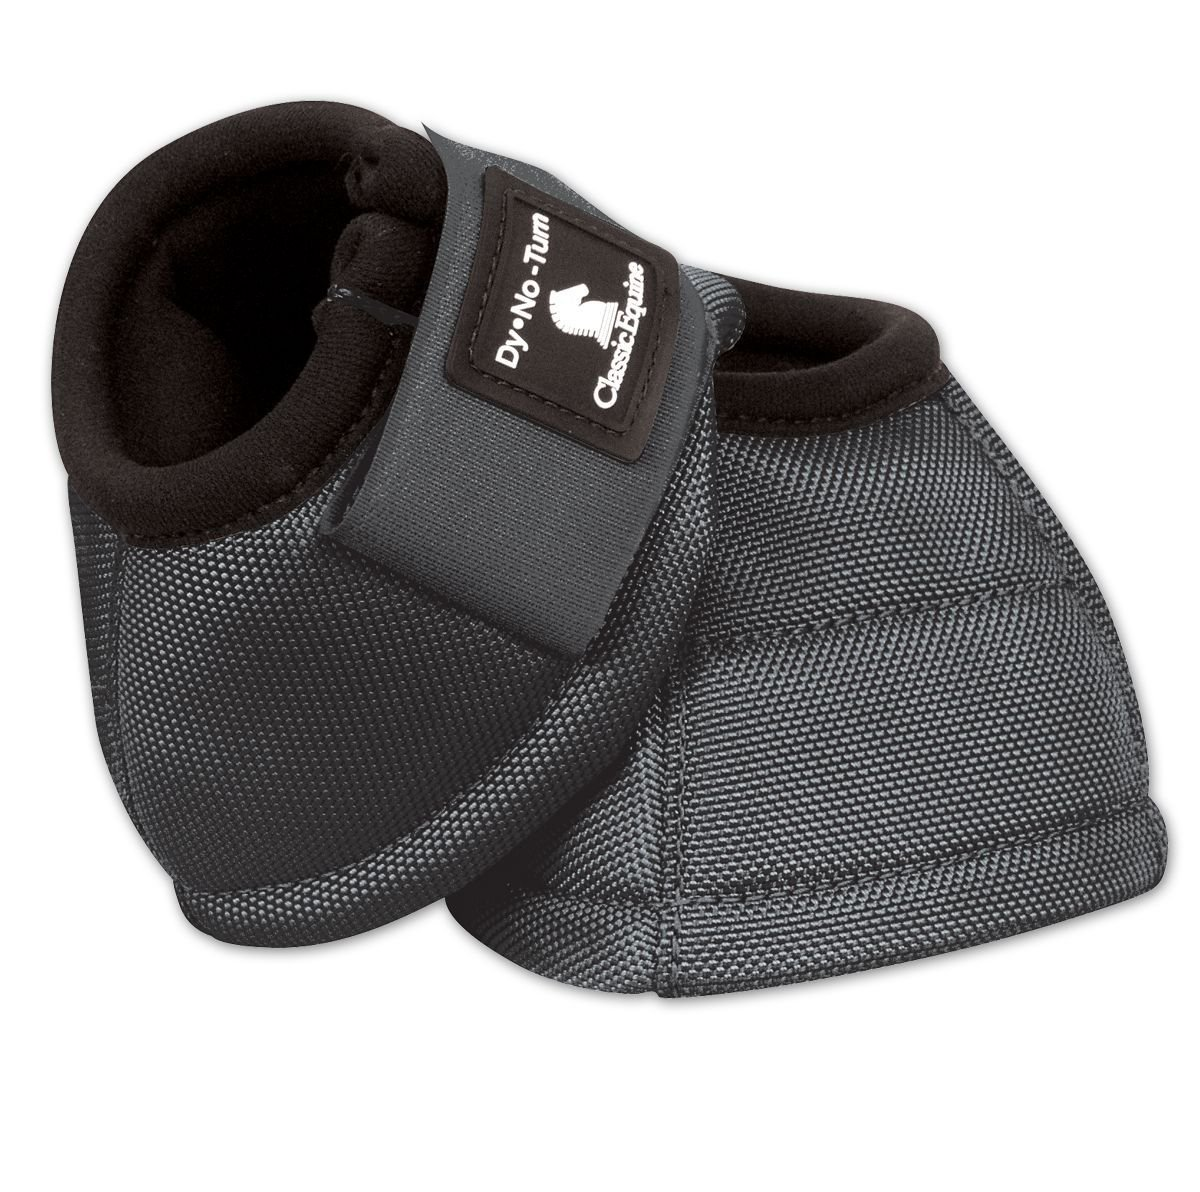 Classic Equine Dyno No-Turn Bell Boots B00IEI0ULE Large|Coral